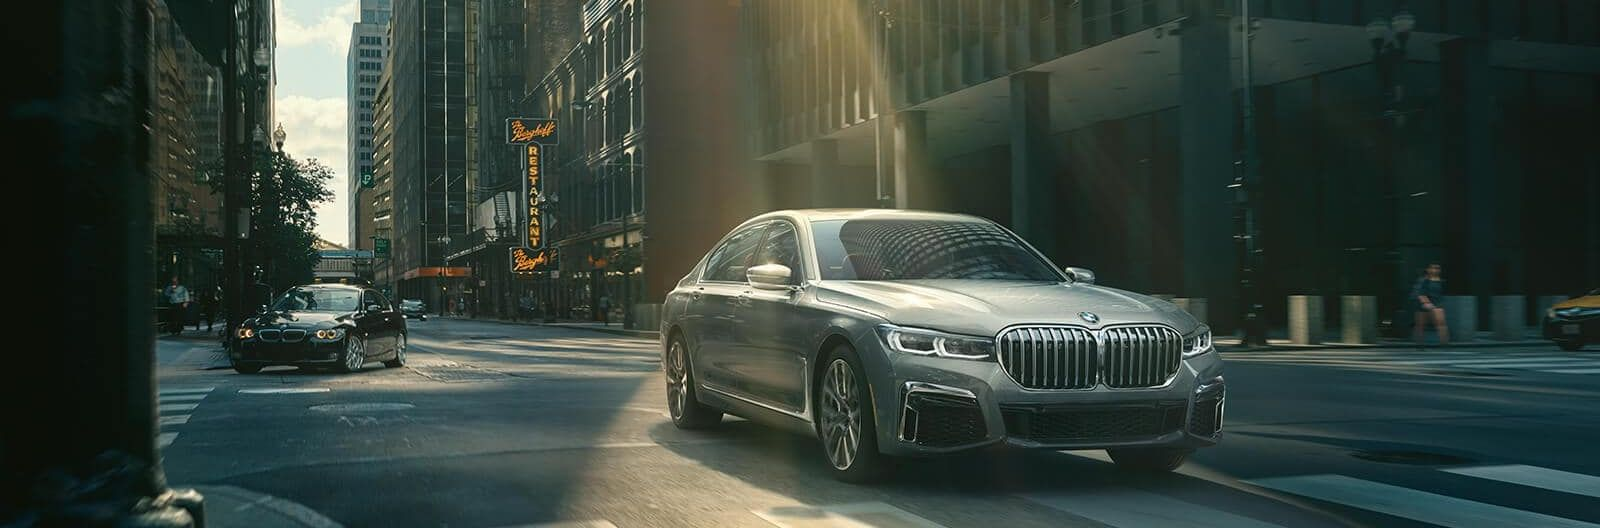 Bmw Jackson Ms >> 2020 Bmw 7 Series Leasing In Jackson Ms